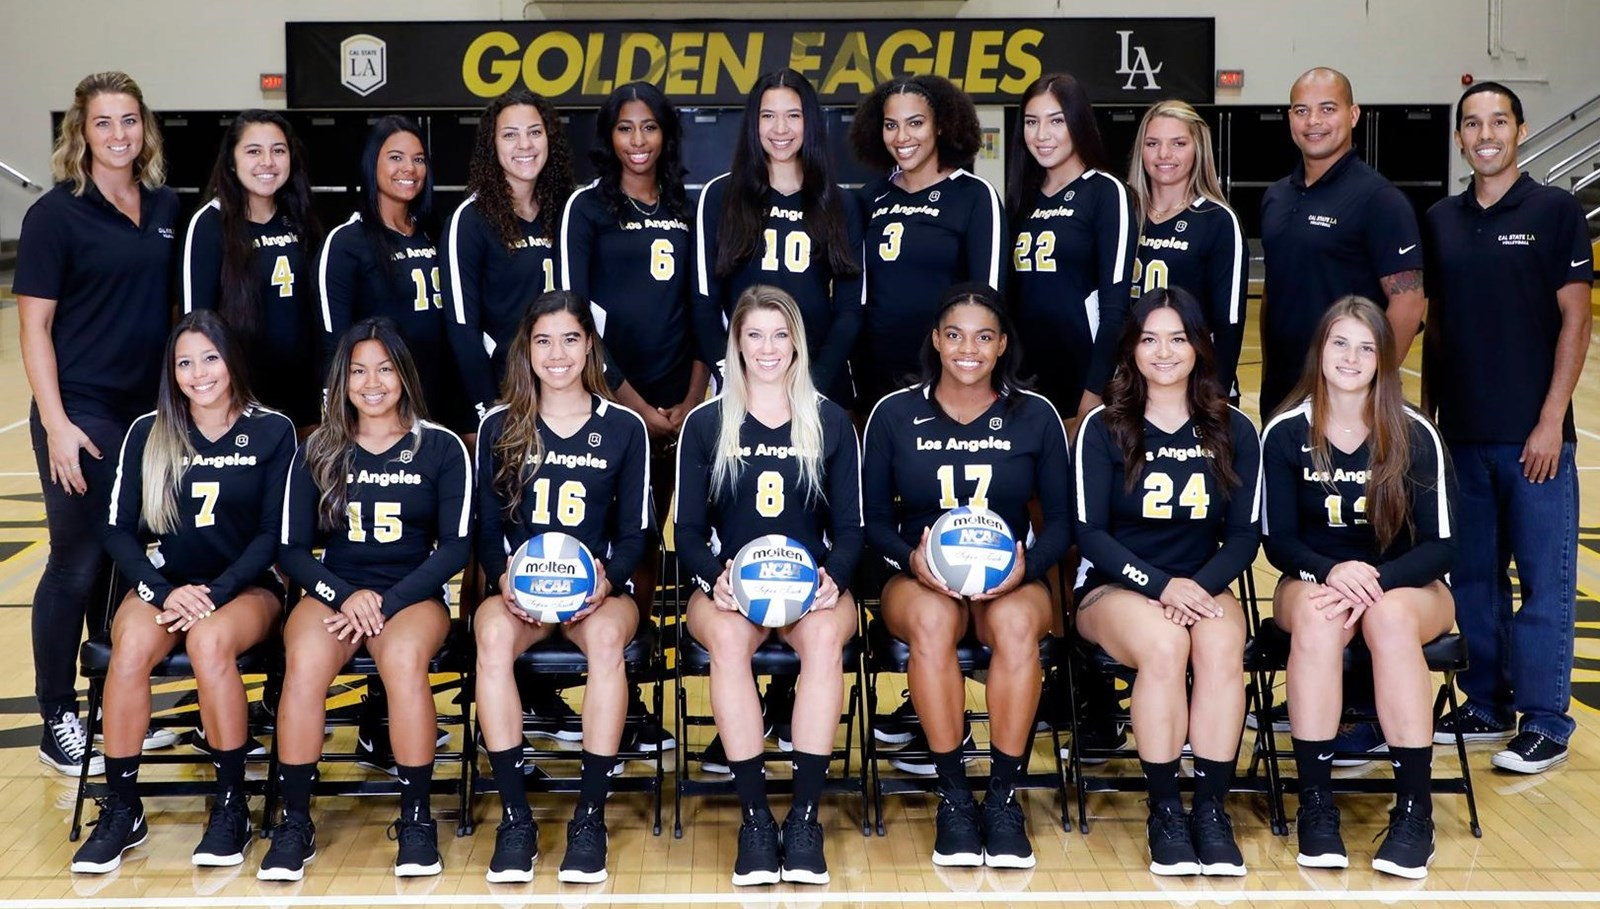 2018 Volleyball Roster - Cal State LA Athletics